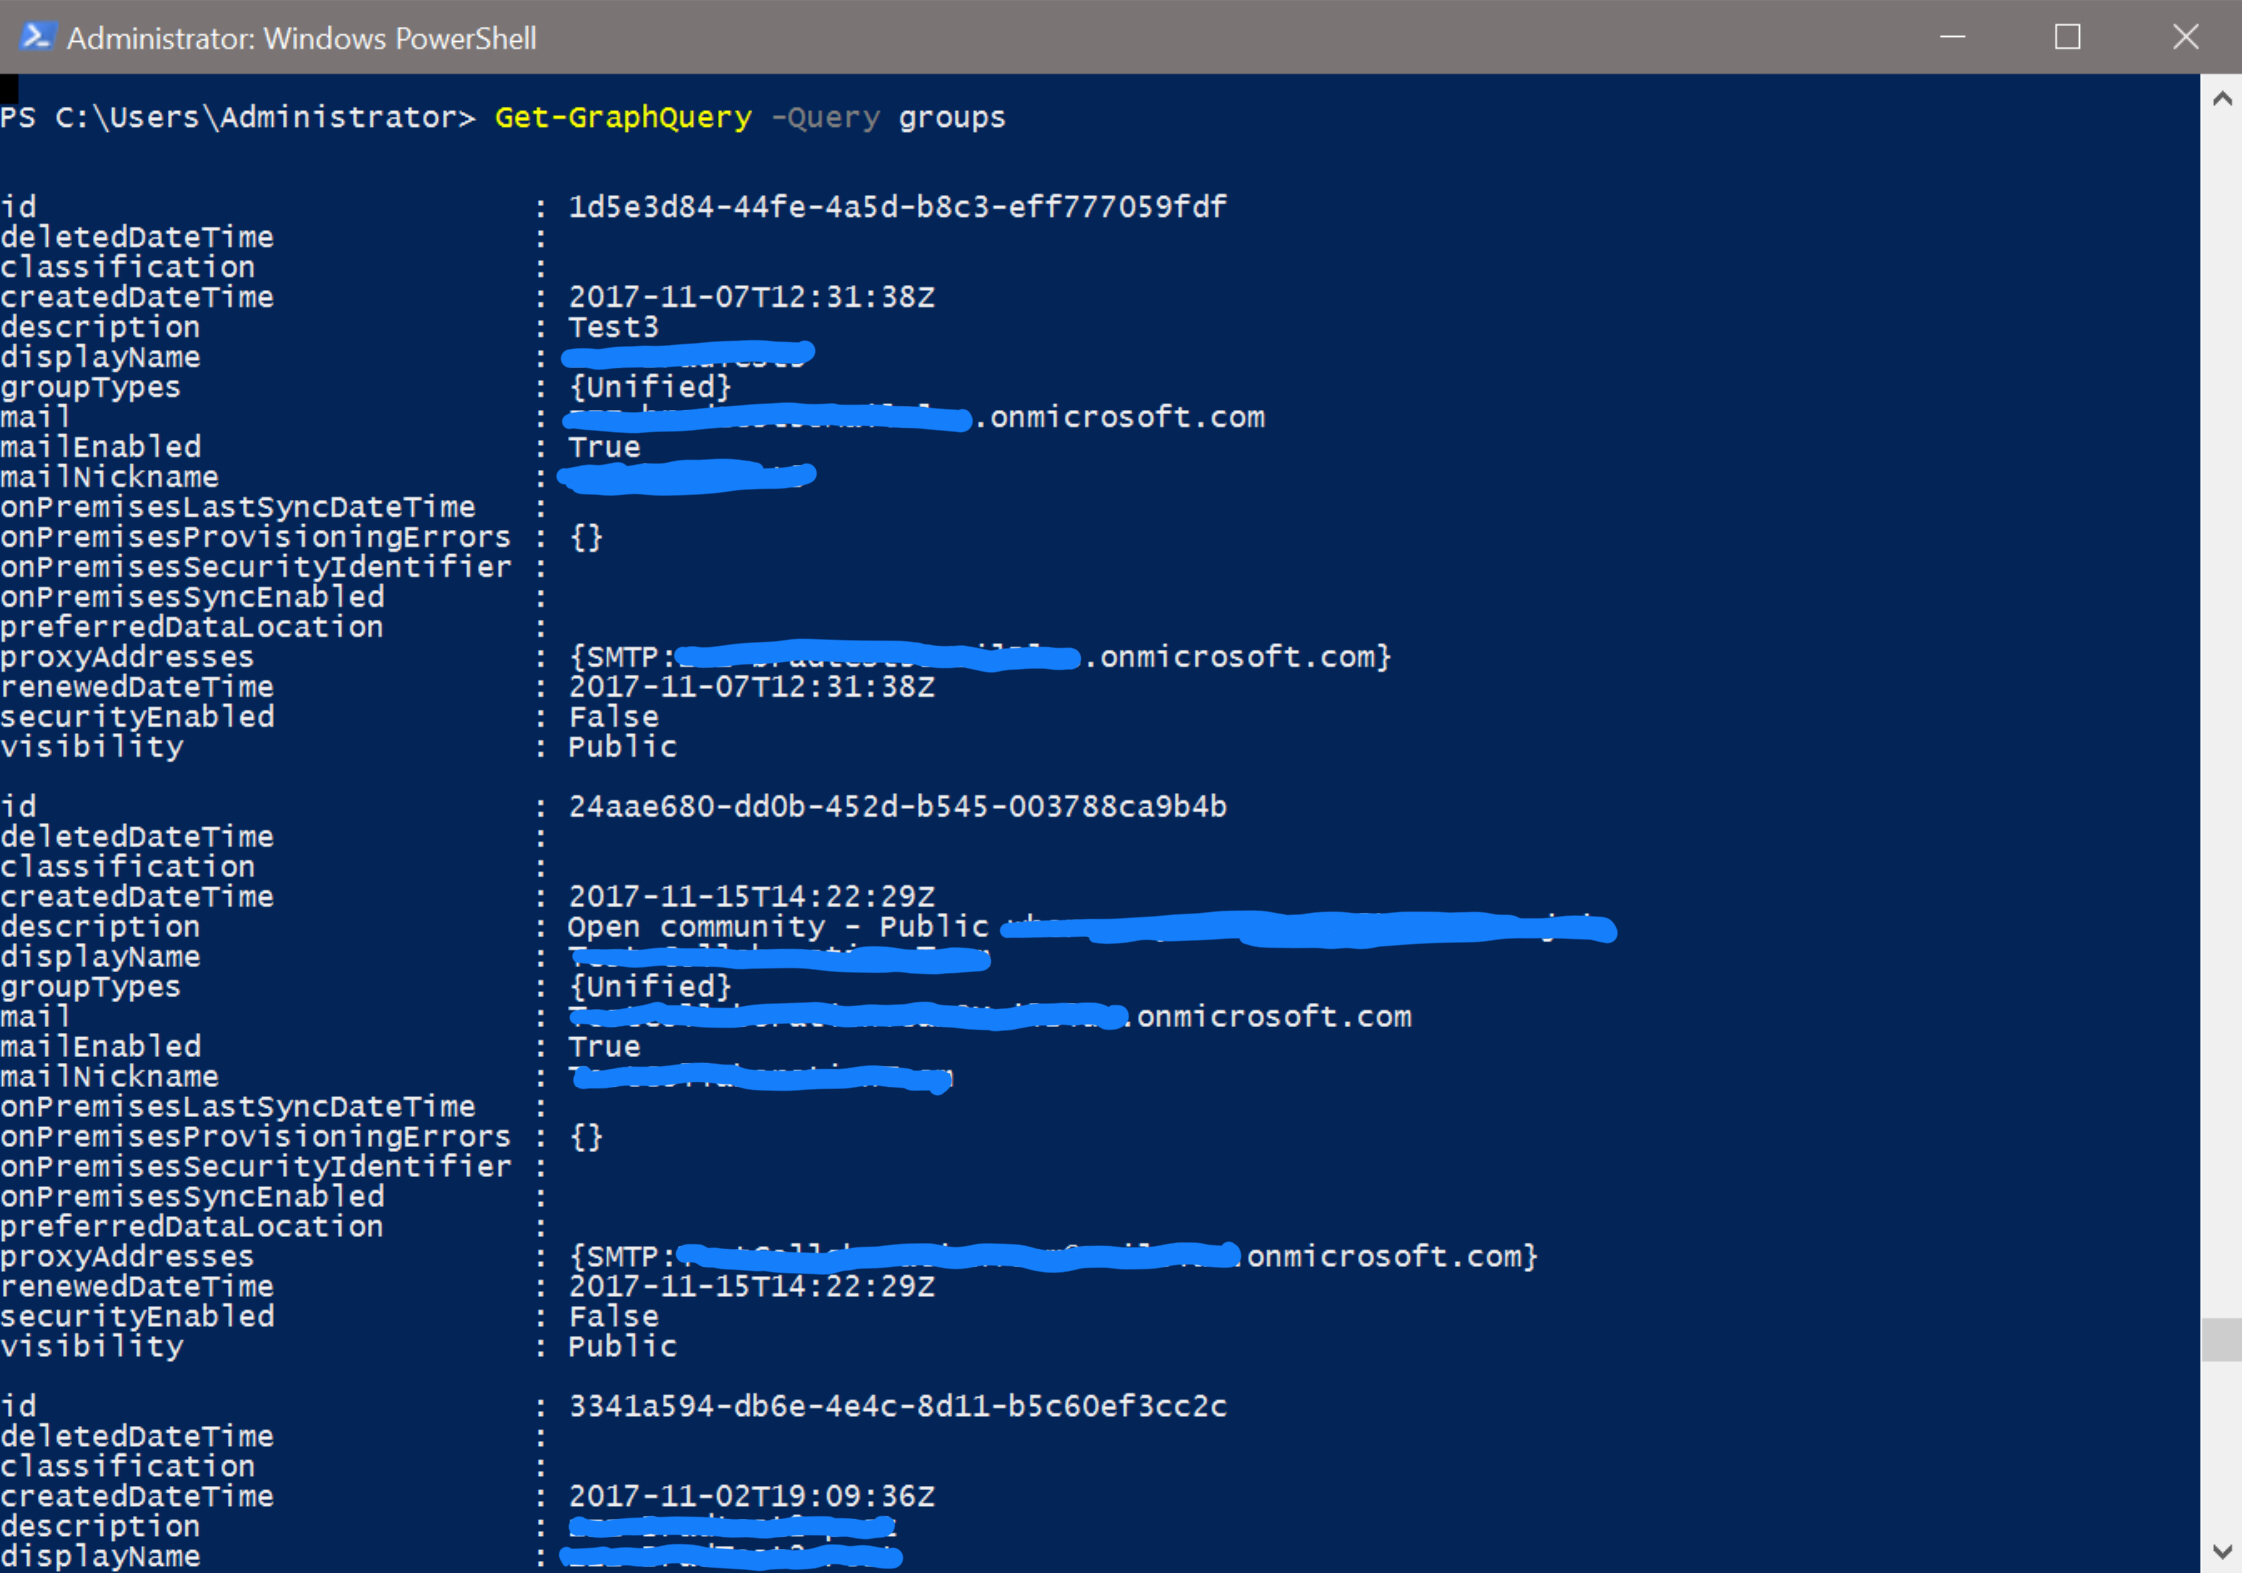 Microsoft Teams PowerShell Module and Insight into the